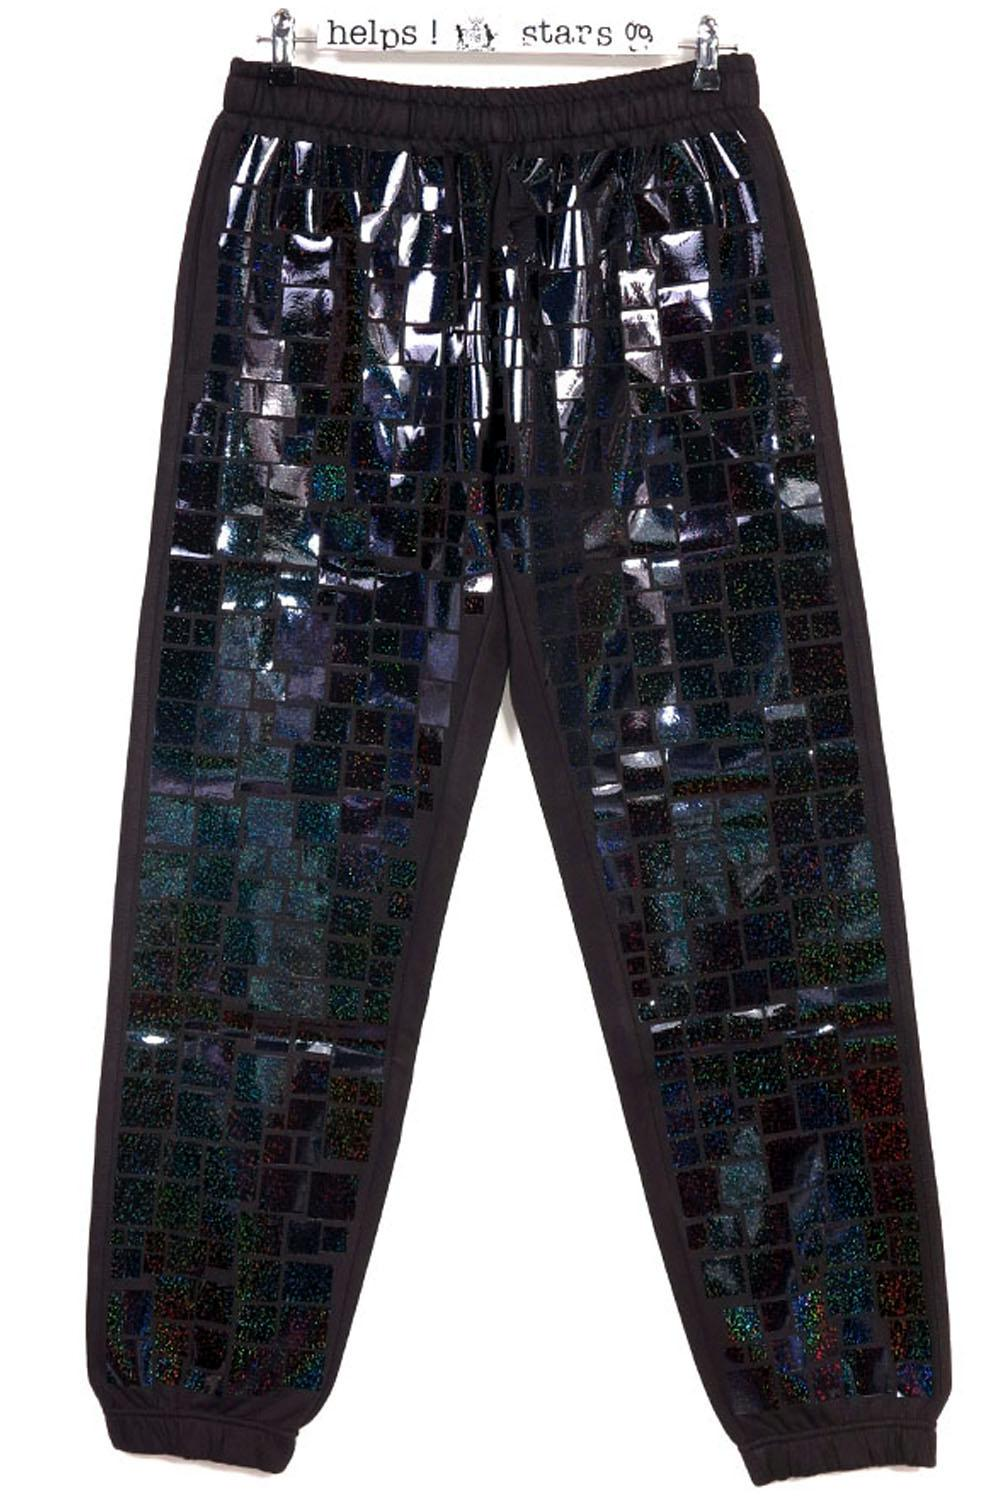 MOSAIC ALLOVER JOGGERS - 0